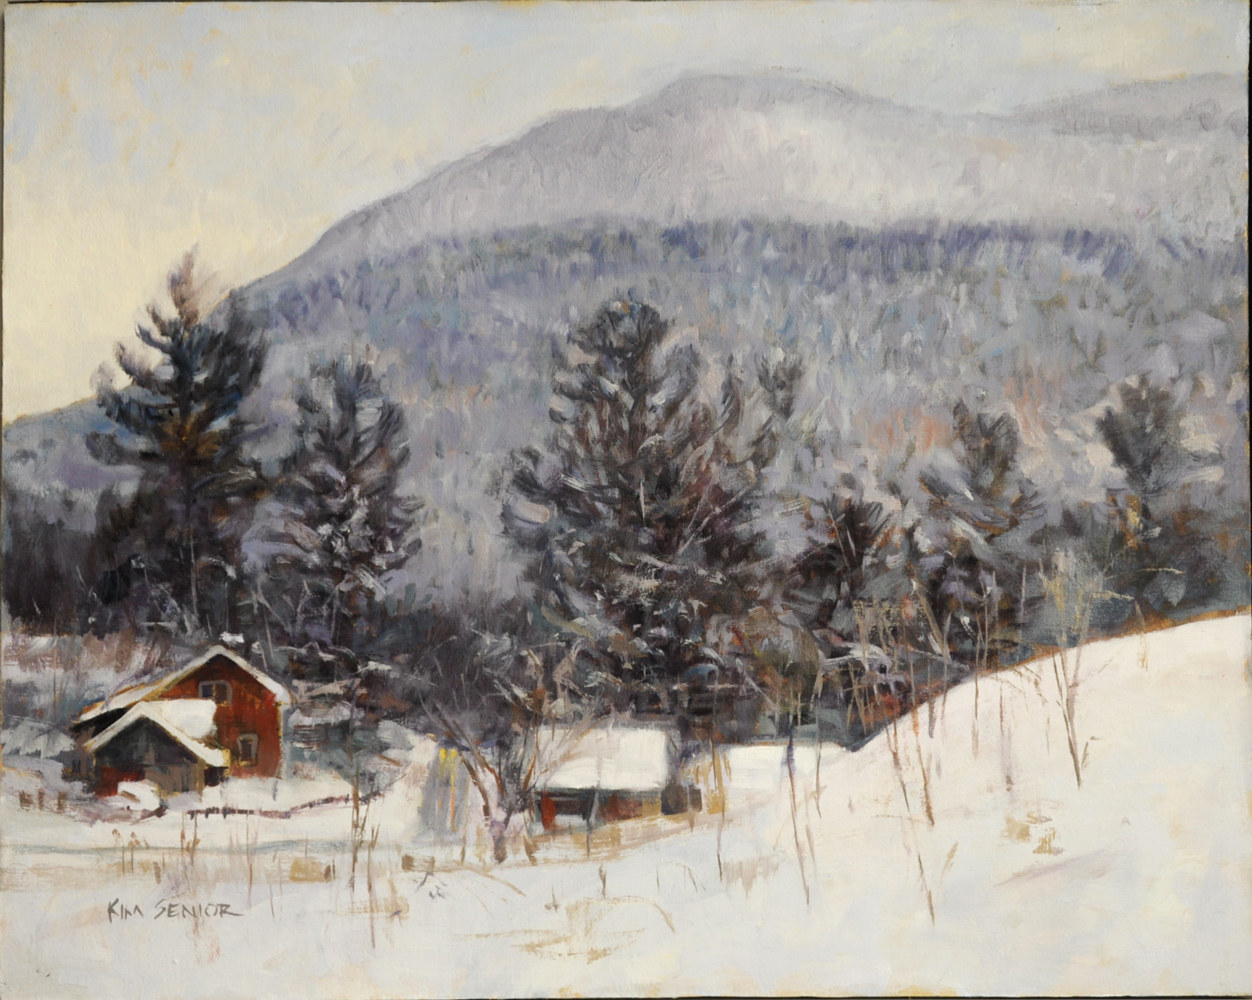 Oil painting After Snow Waterville by Kimberley Senior